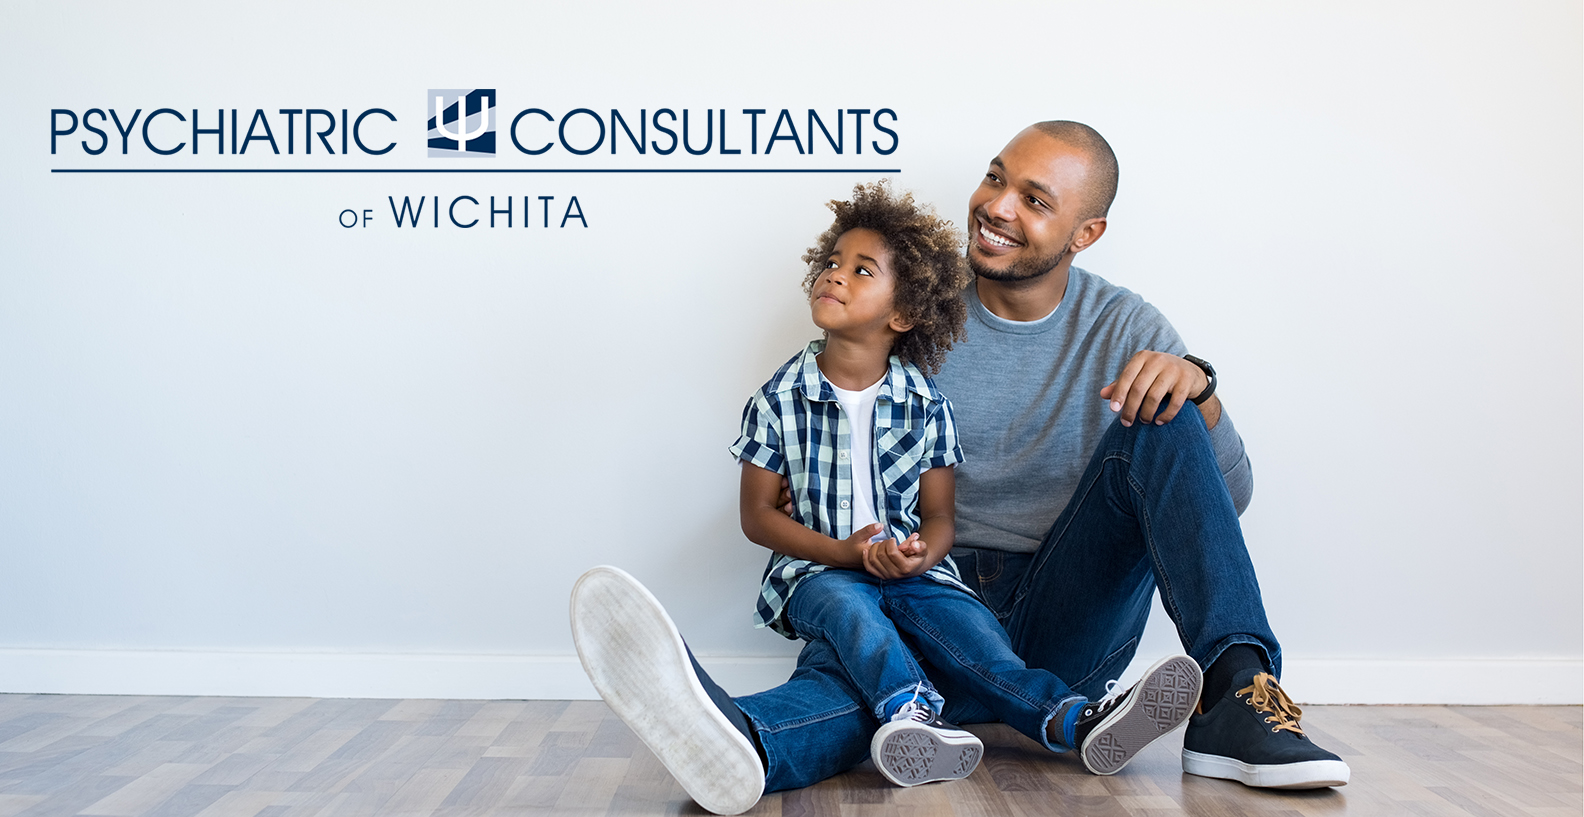 Psych Consultants of Wichita